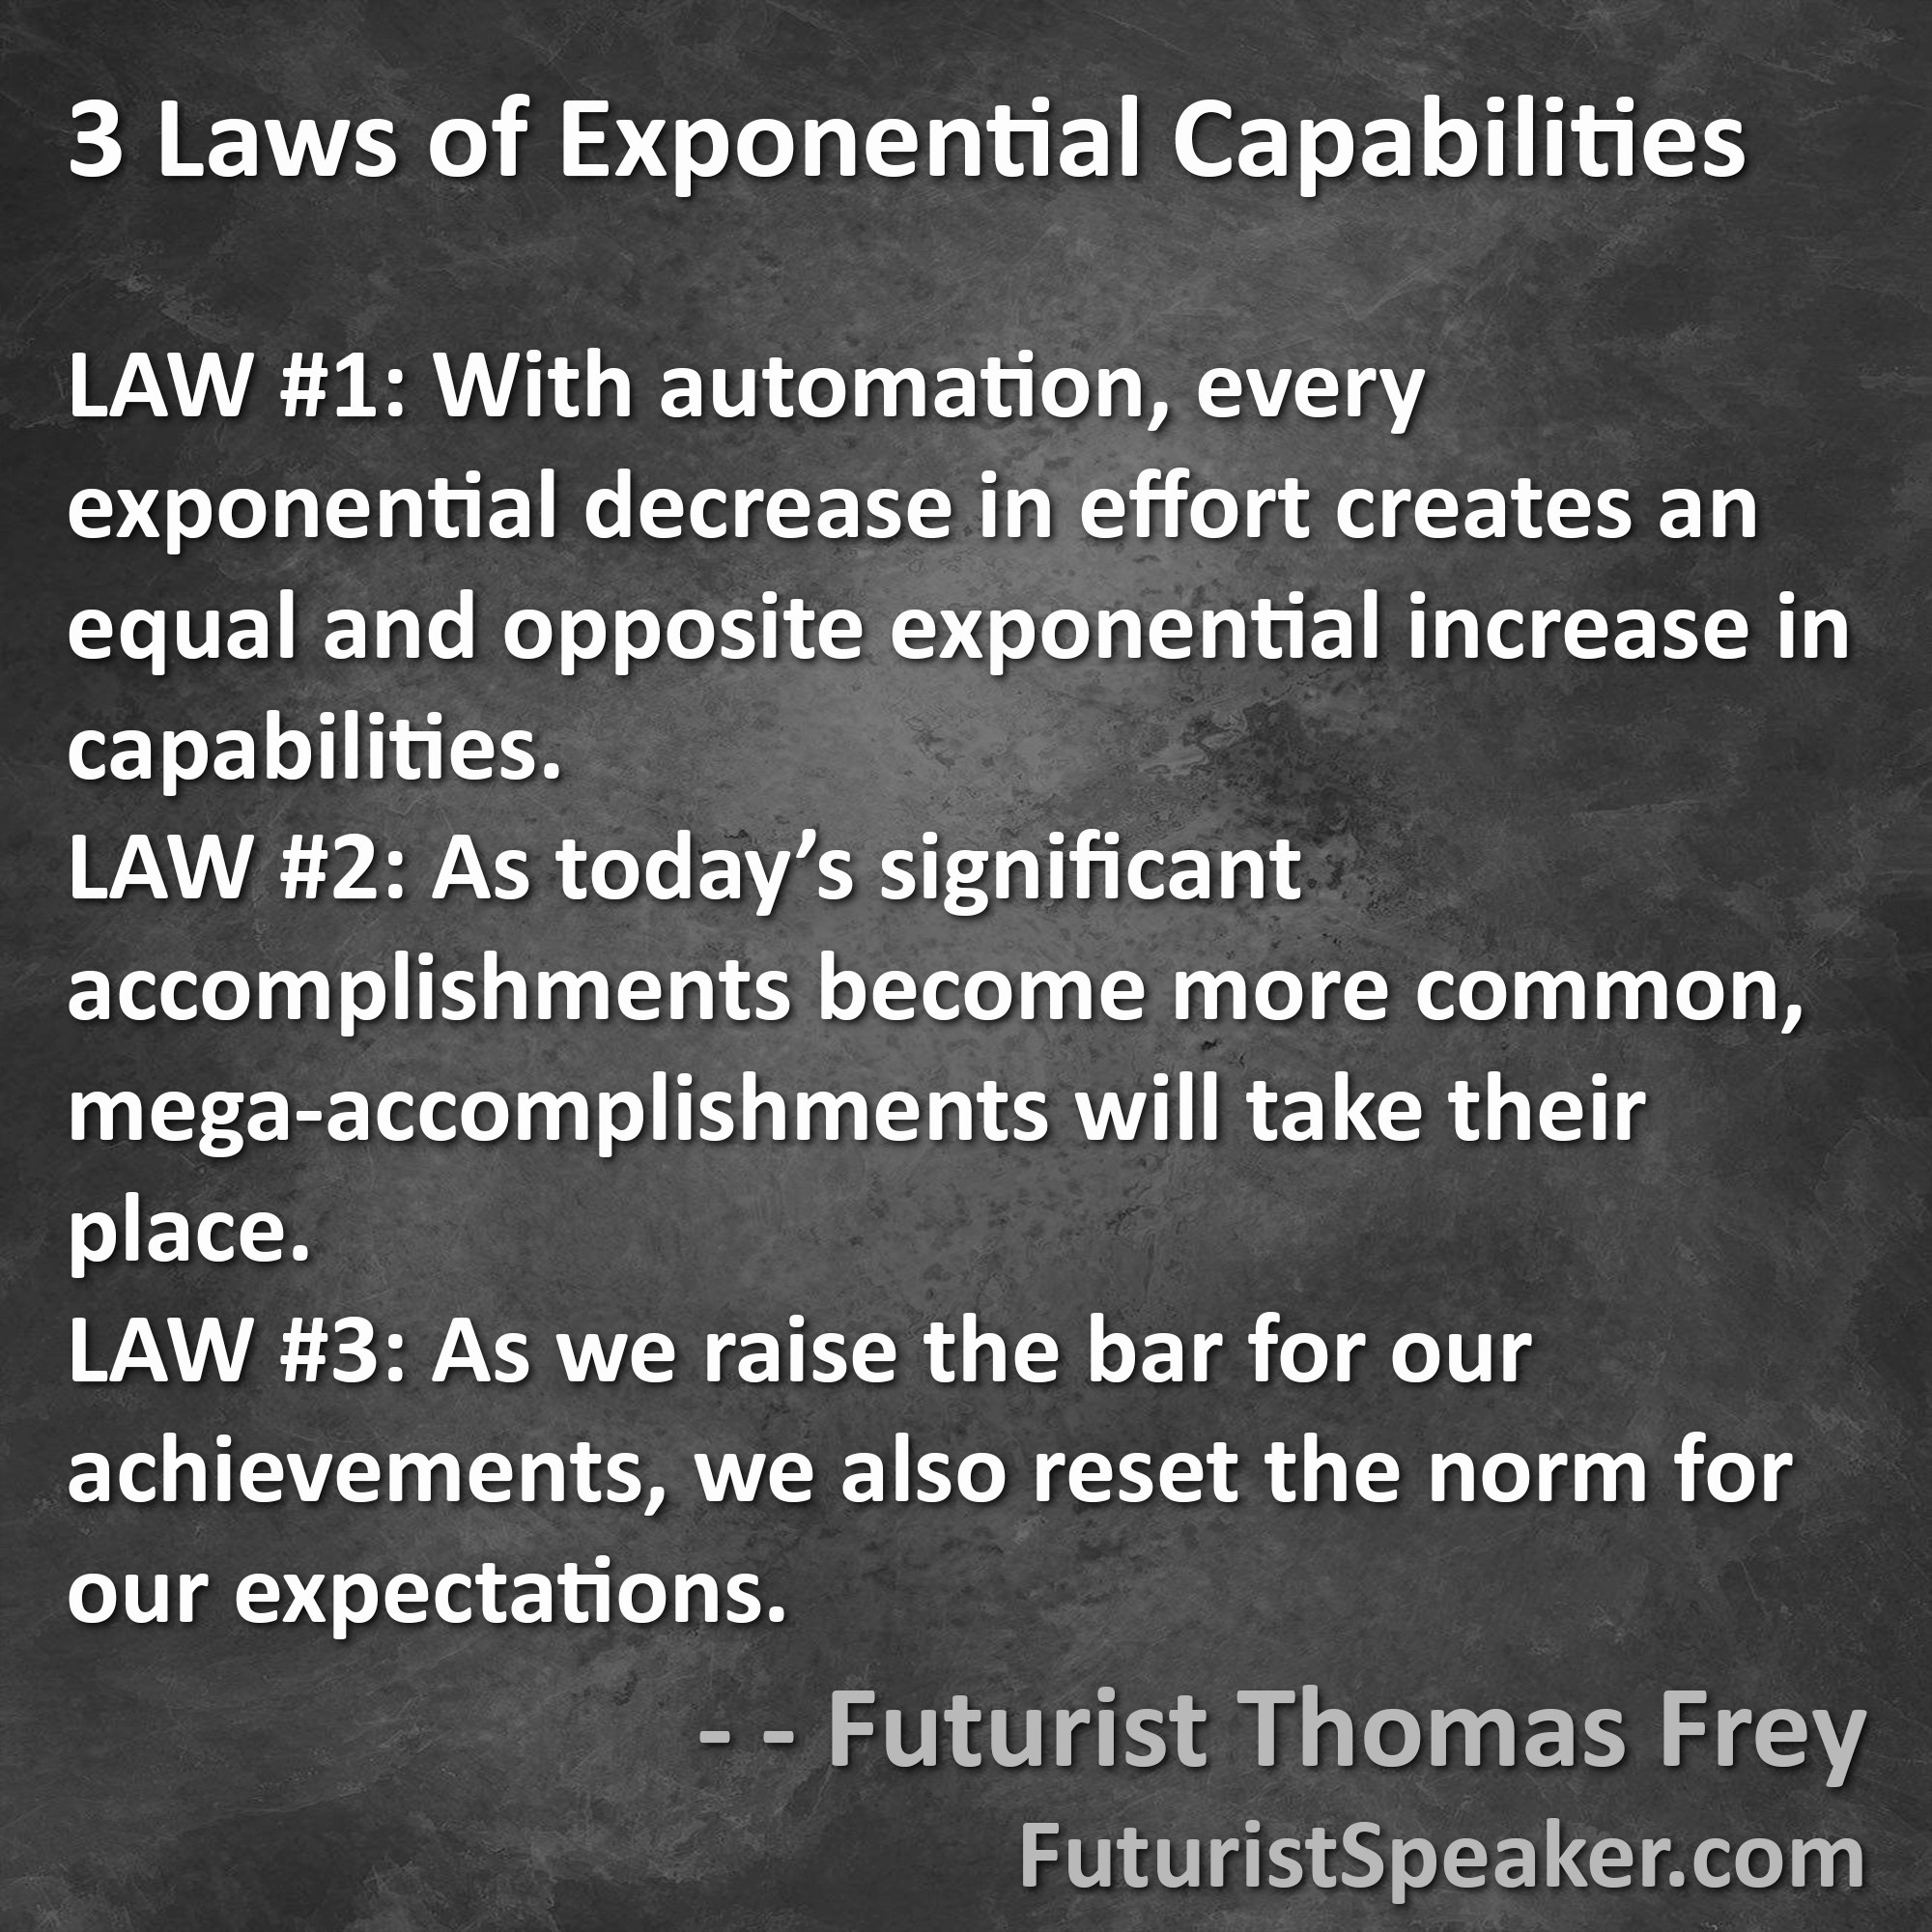 Thomas Frey Futurist Speaker Famous Quote: 3 Laws of Exponential Capabilities: automation, mega-accomplishments, raise the bar for achievements and expectations.